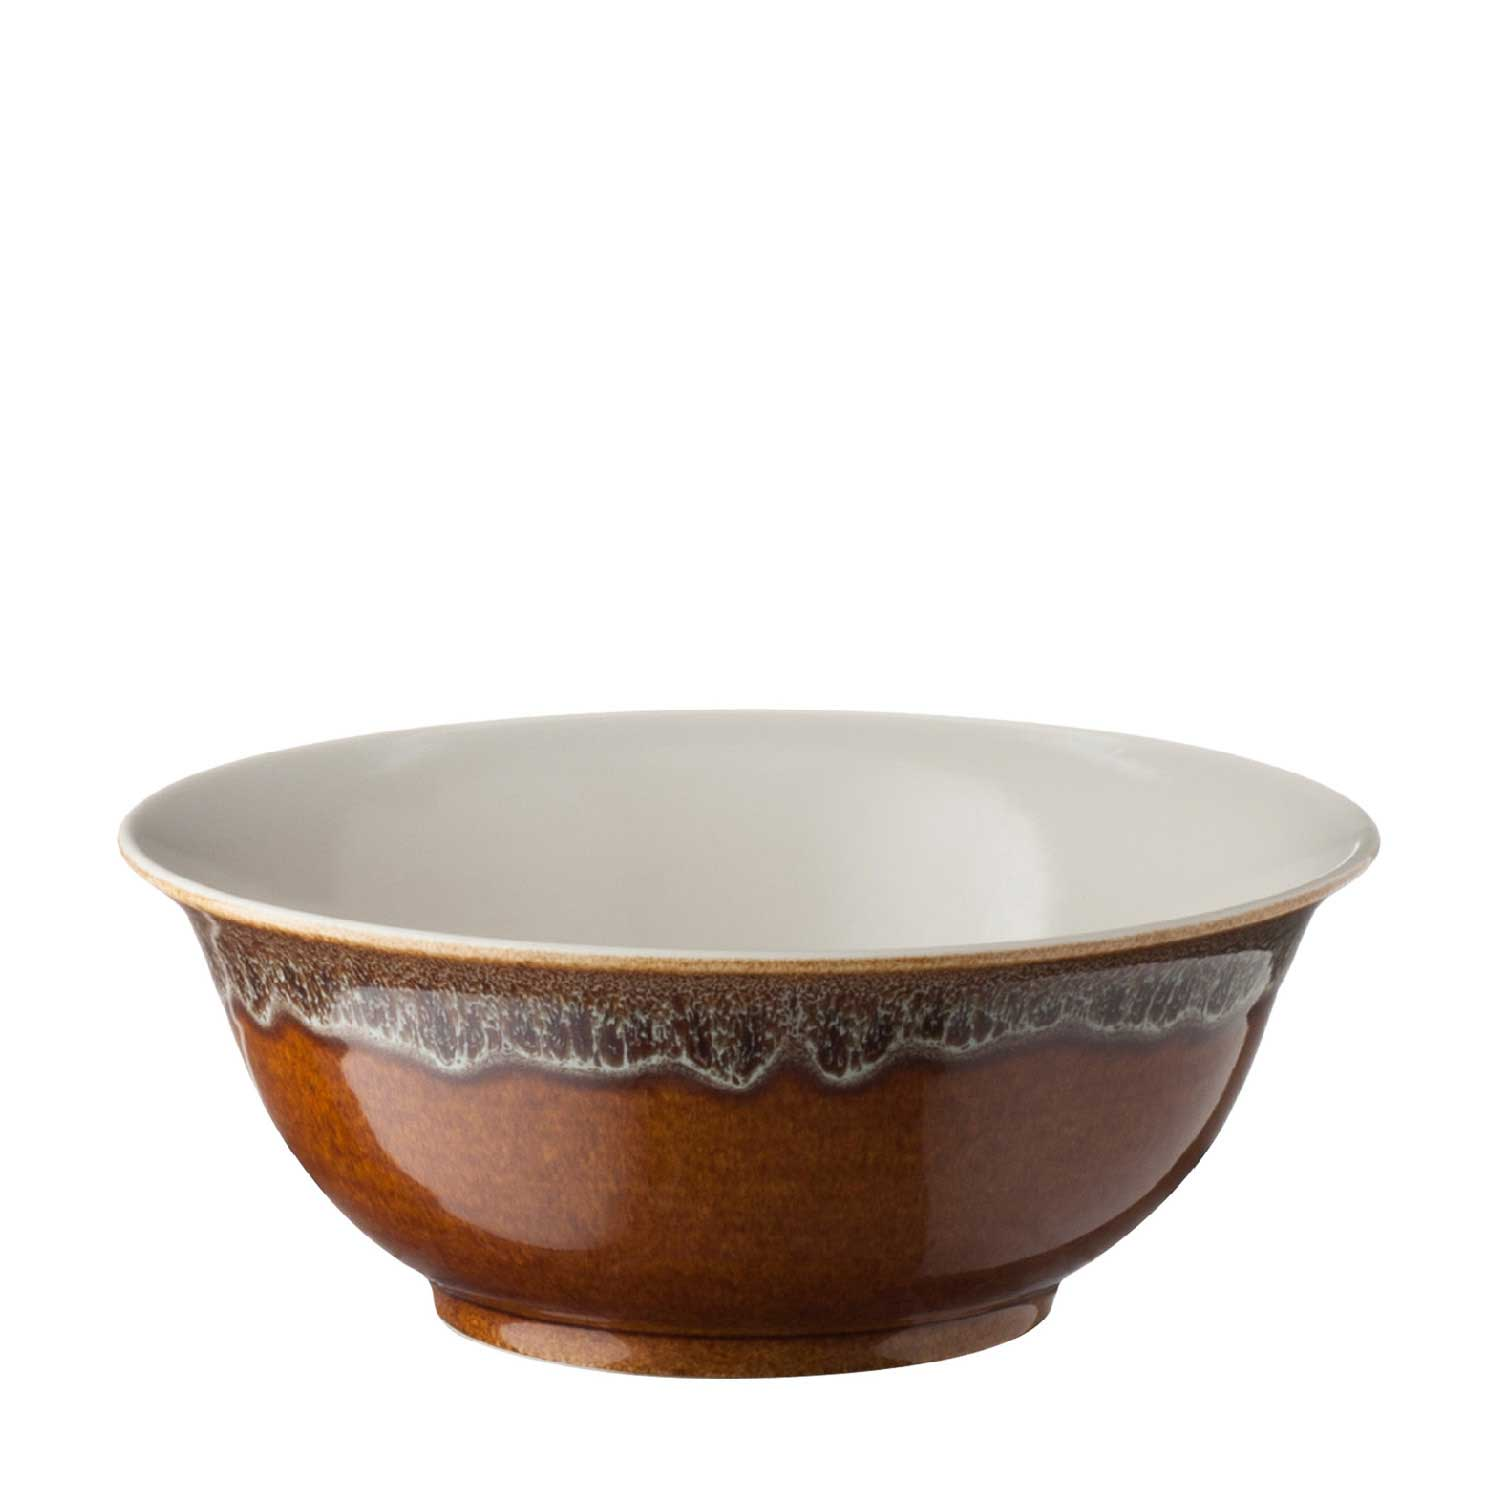 CLASSIC CURVED SALAD BOWL 3